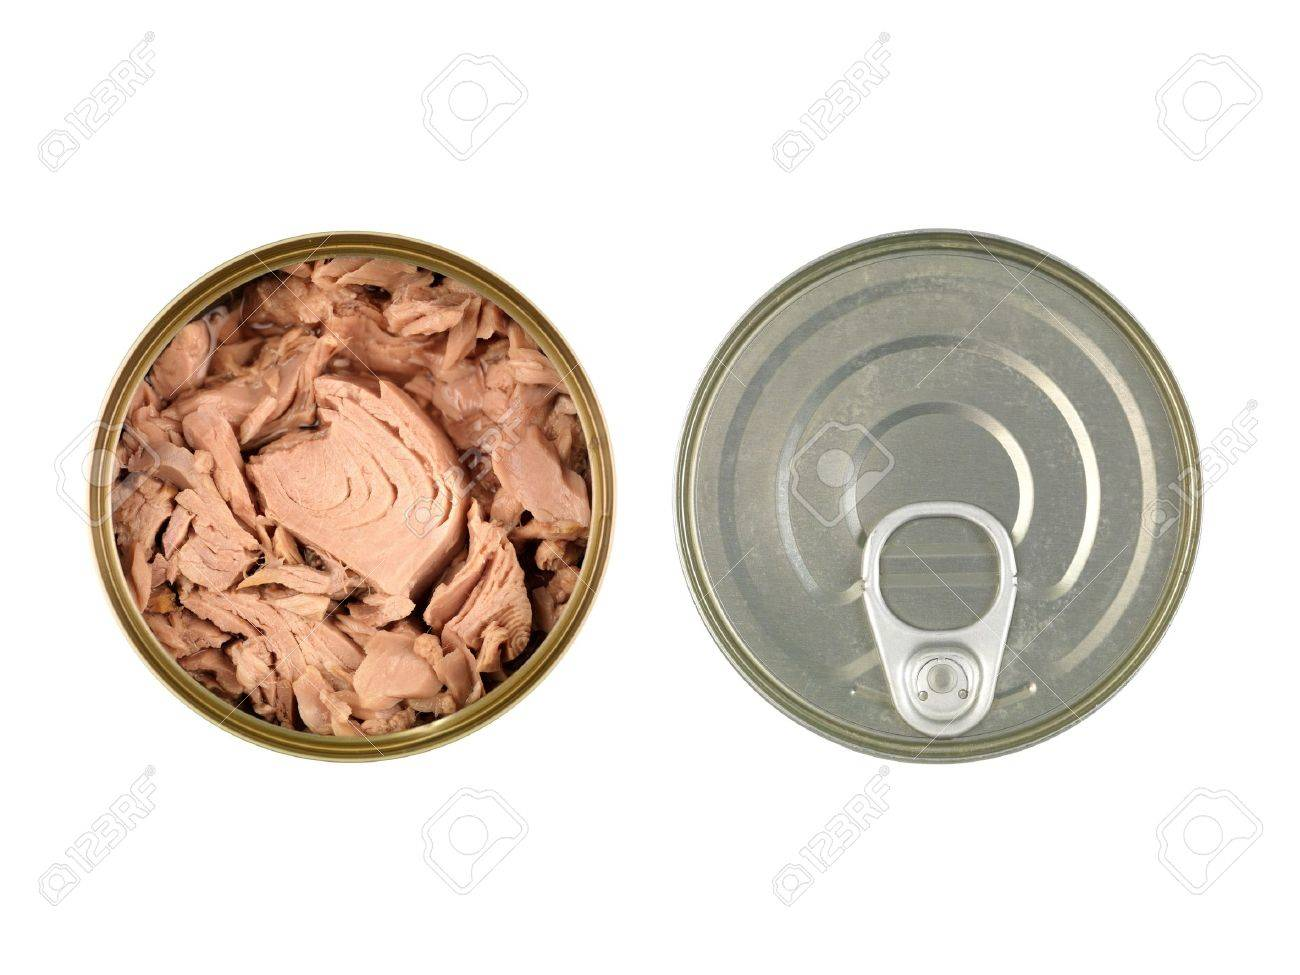 Canned tuna isolated against a white background Stock Photo - 13783927